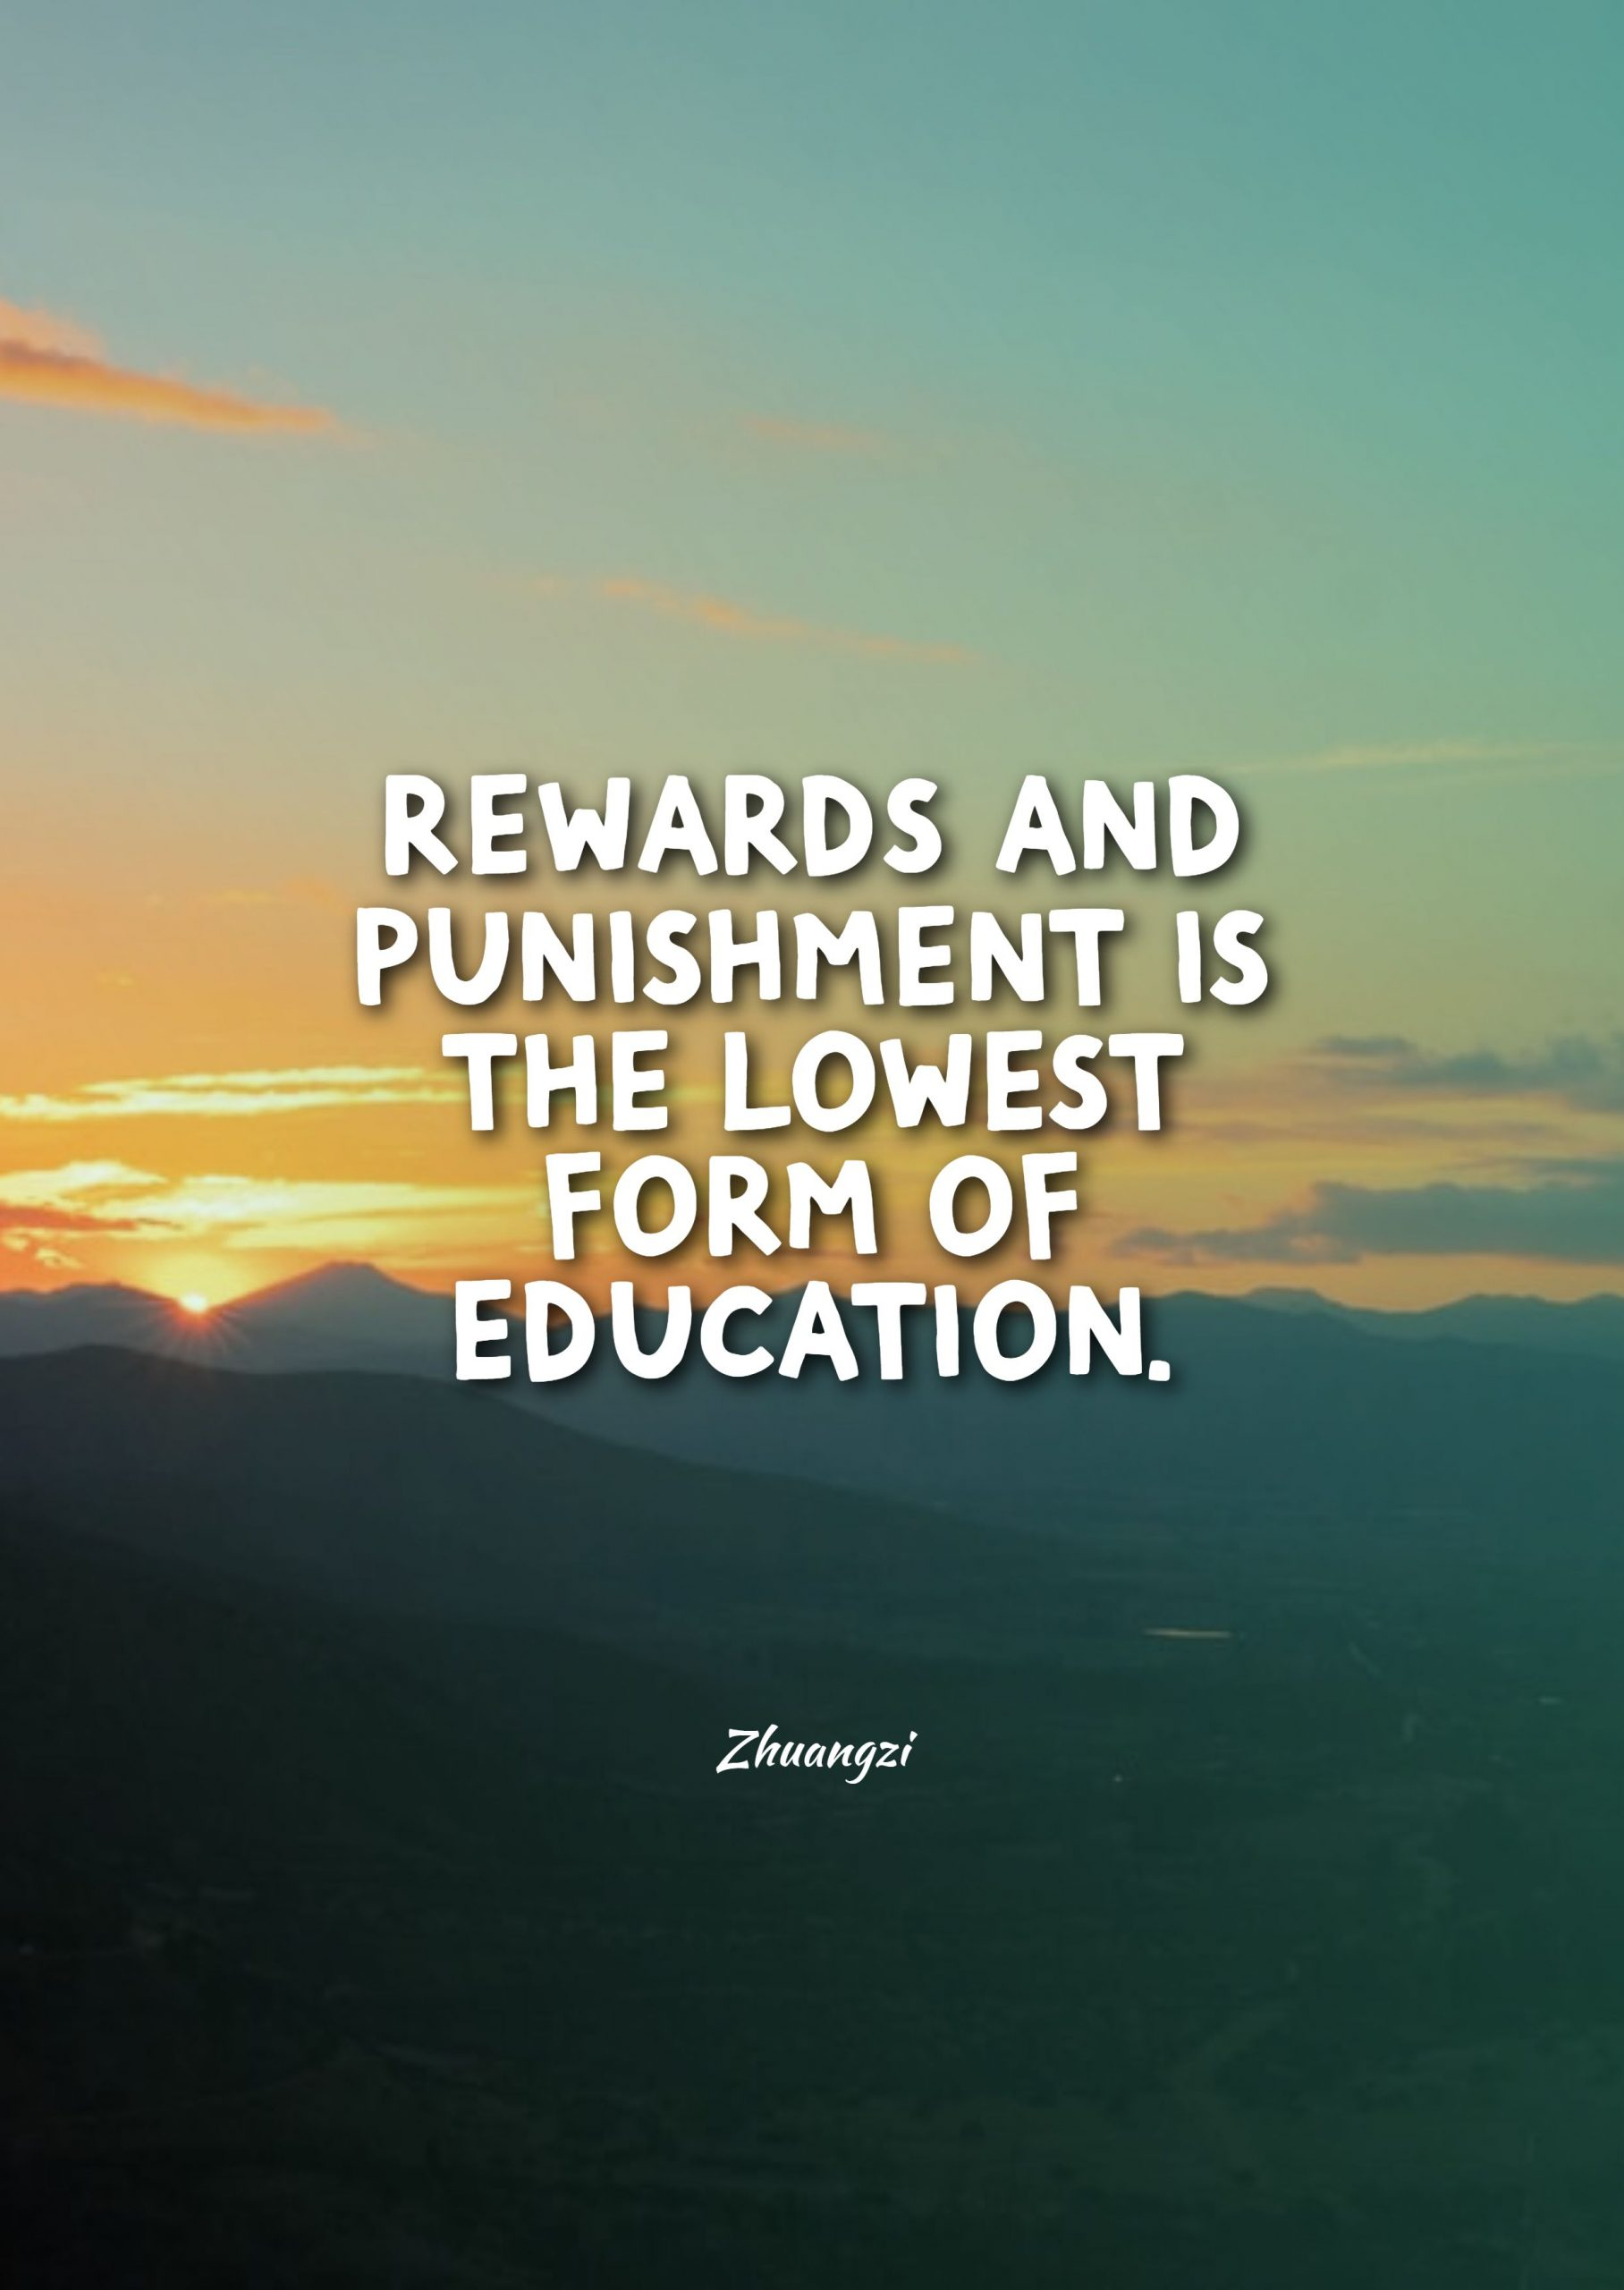 Quotes image of Rewards and punishment is the lowest form of education.